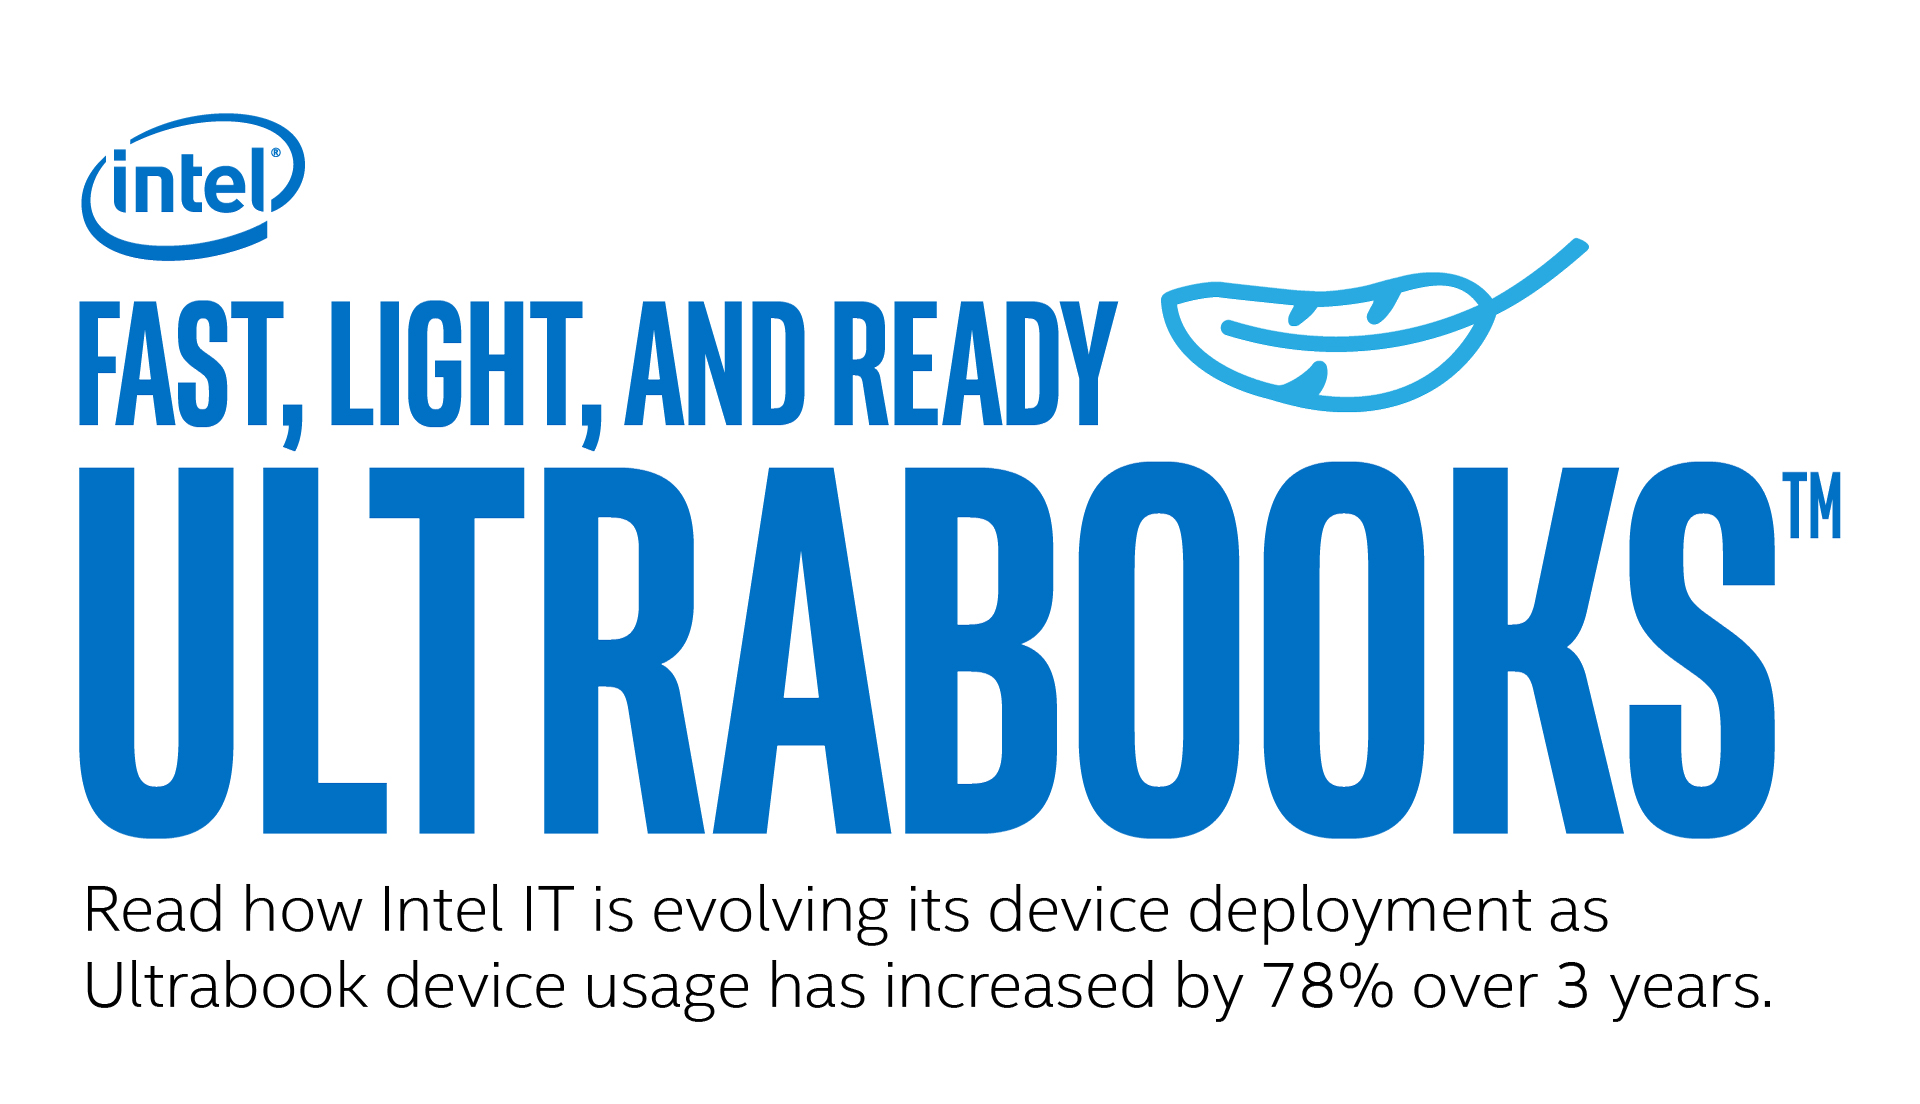 Ultrabook Devices at Intel have Grown